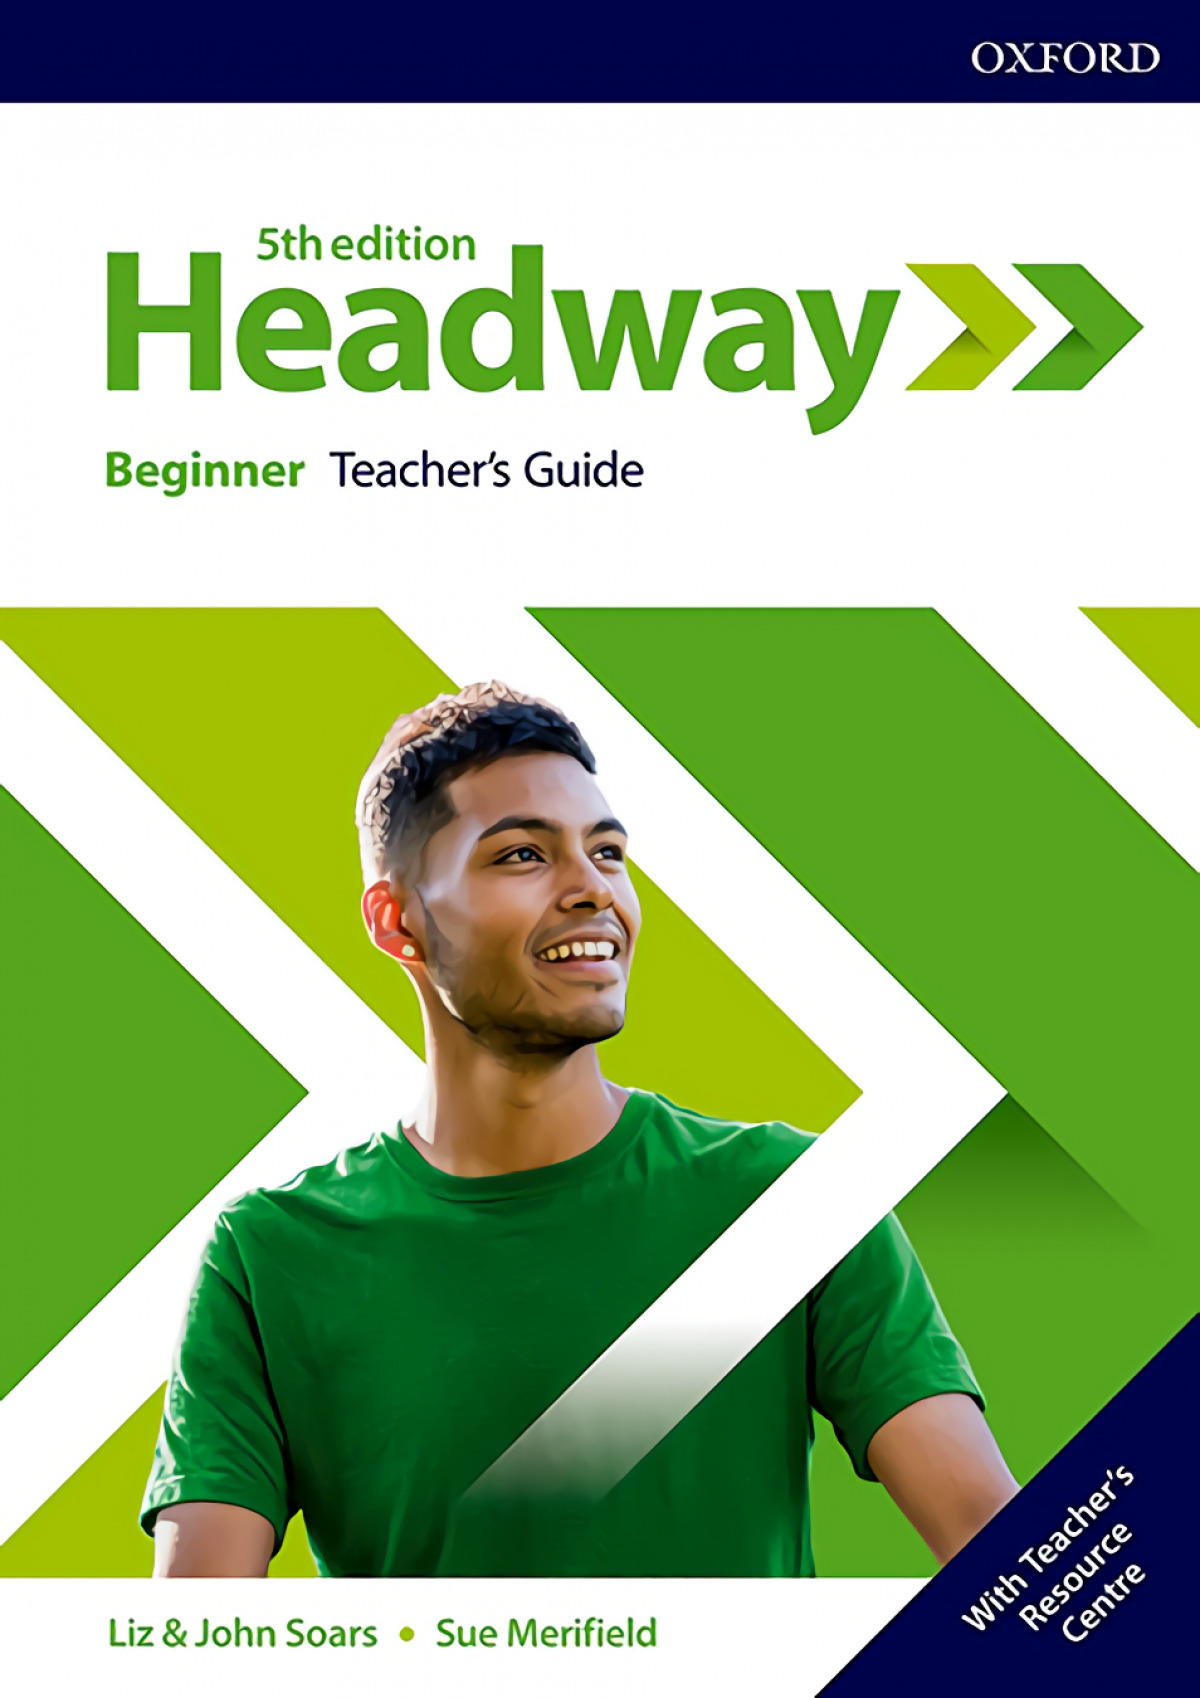 HEADWAY BEGINNER TEACHERS GUIDE AND RESOURCE PACK FIFTH EDITION